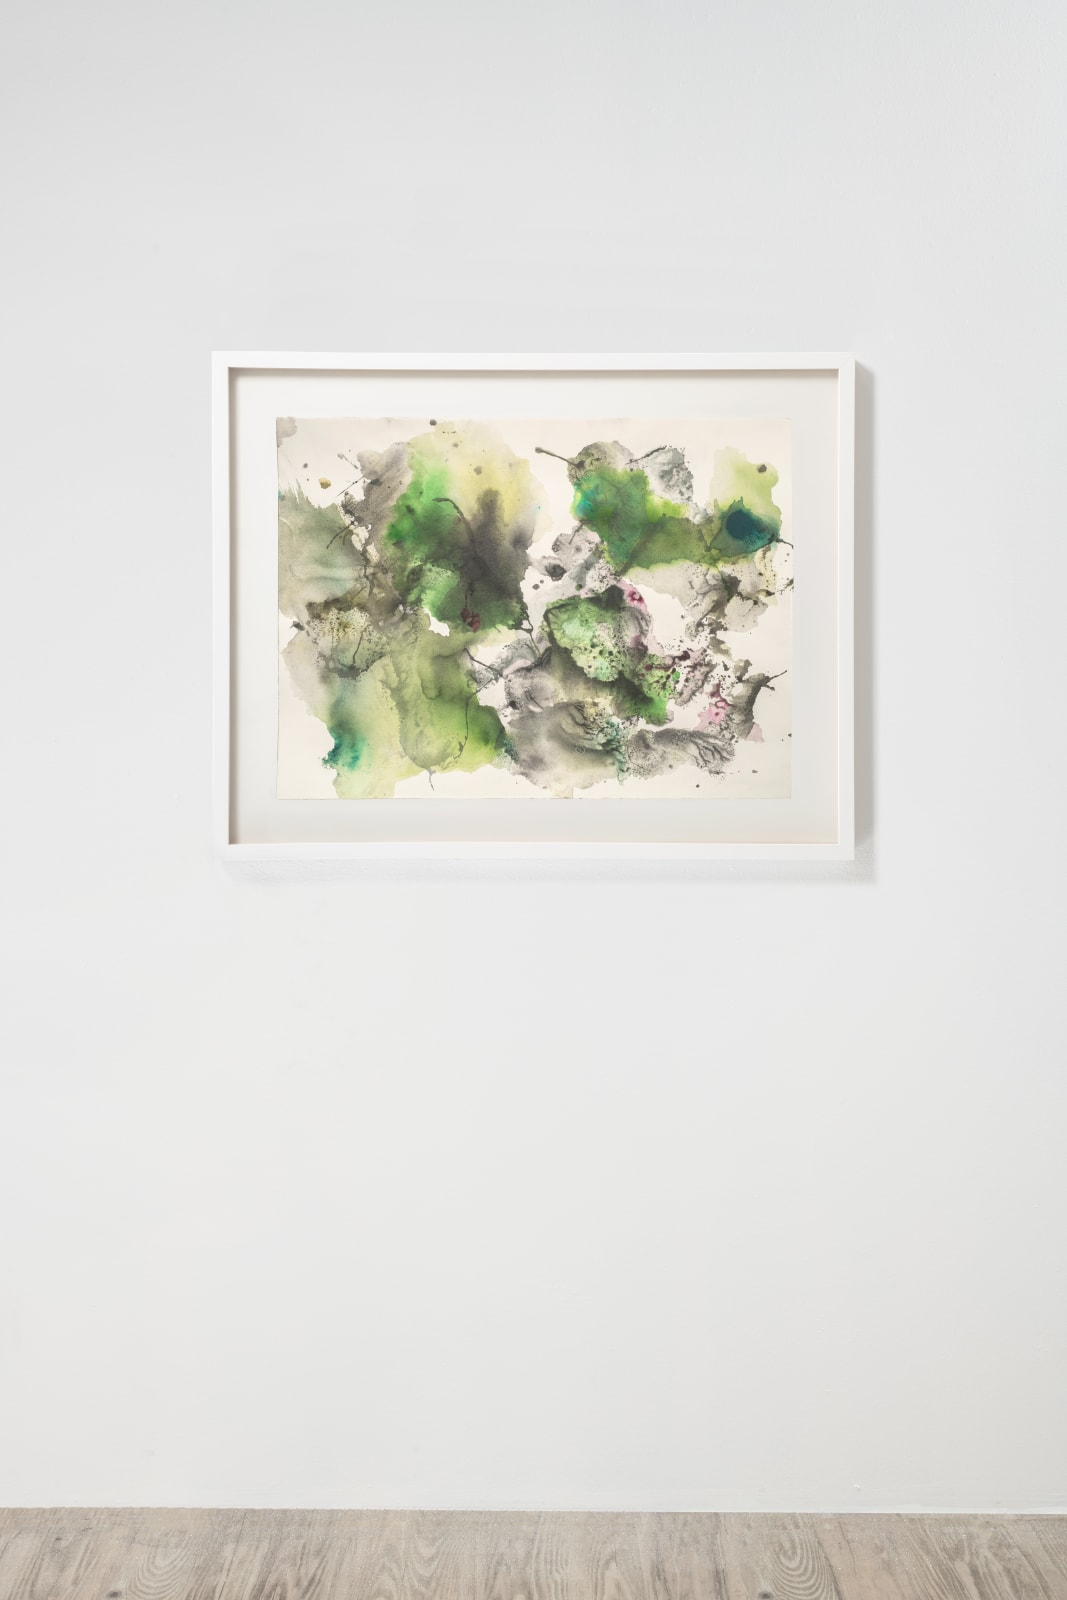 Michele Colburn Entrapment, 2020 Gunpowder and watercolors on Fabriano paper 55.9 x 76.2 cm, 22 x 30 in. (Frame not included) Photo: Lee Stalsworth